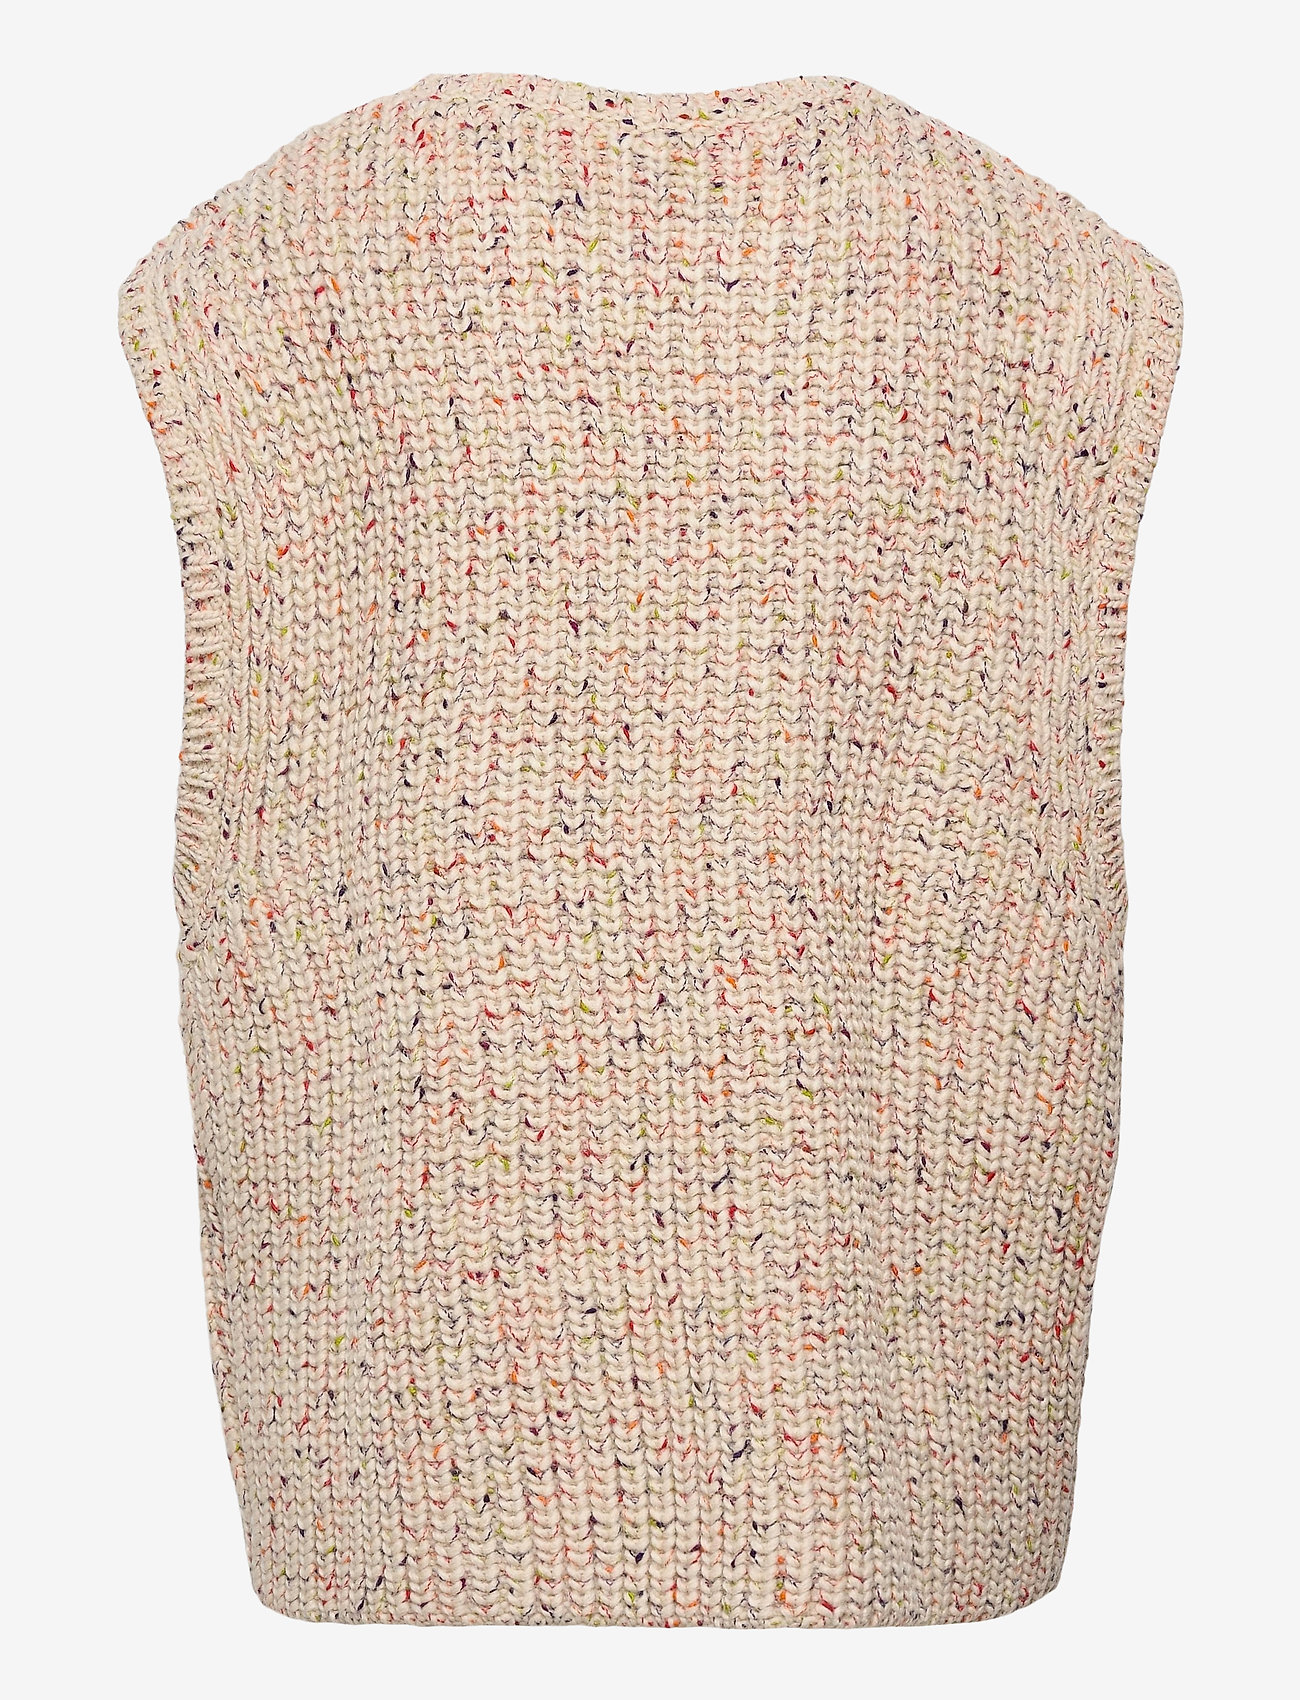 Munthe - TOUCH - knitted vests - nature - 1